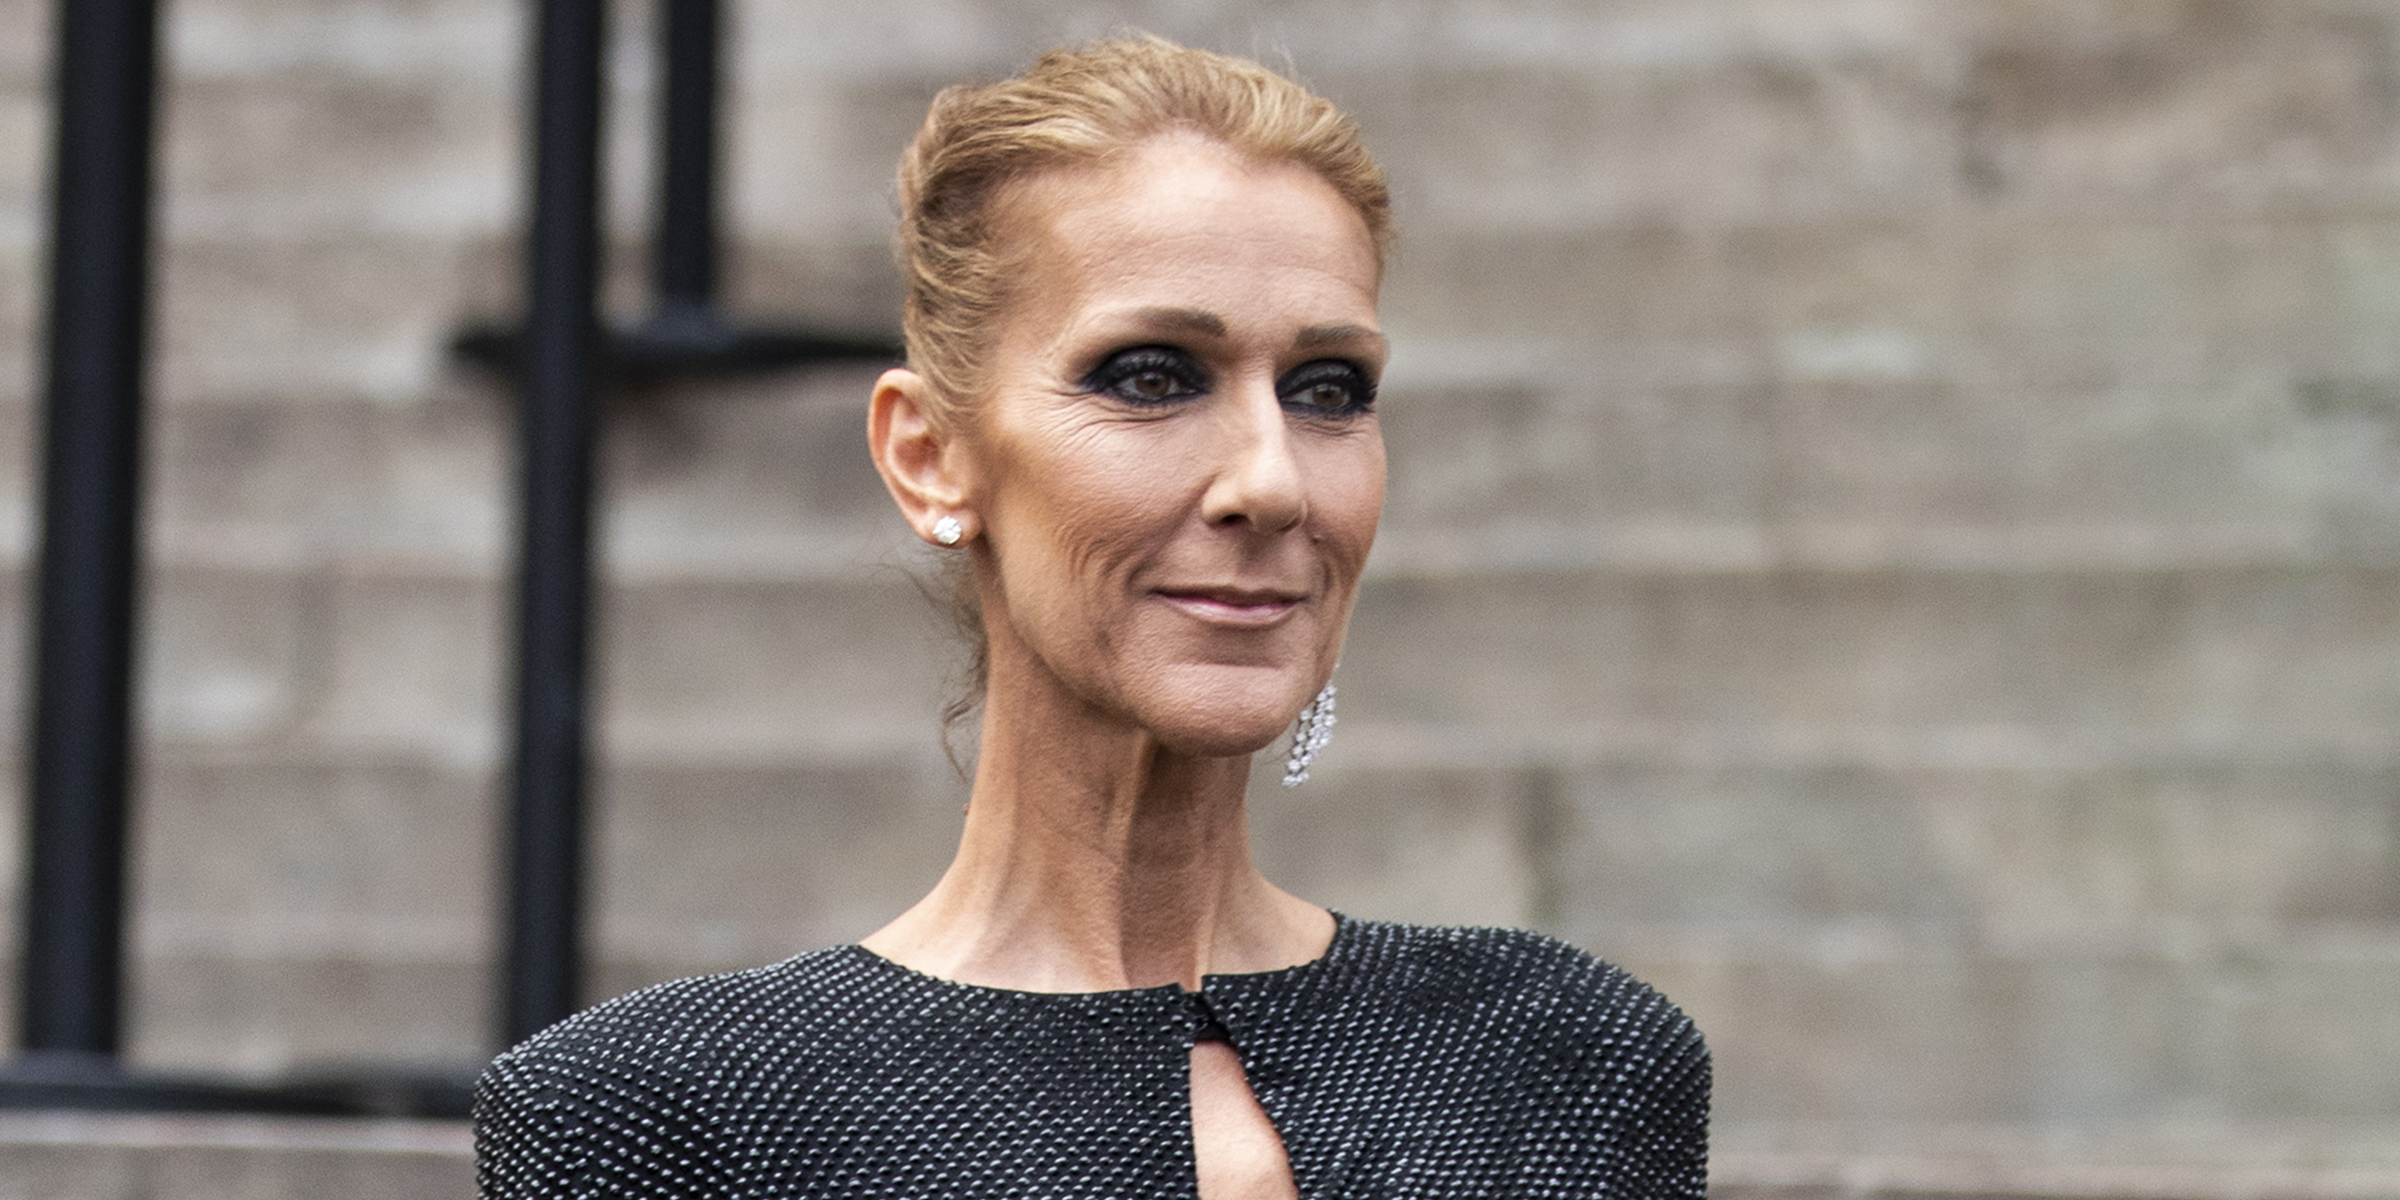 Photo: Celine Dion Photo Credit/Source: Today (article by Drew Weisholtz)